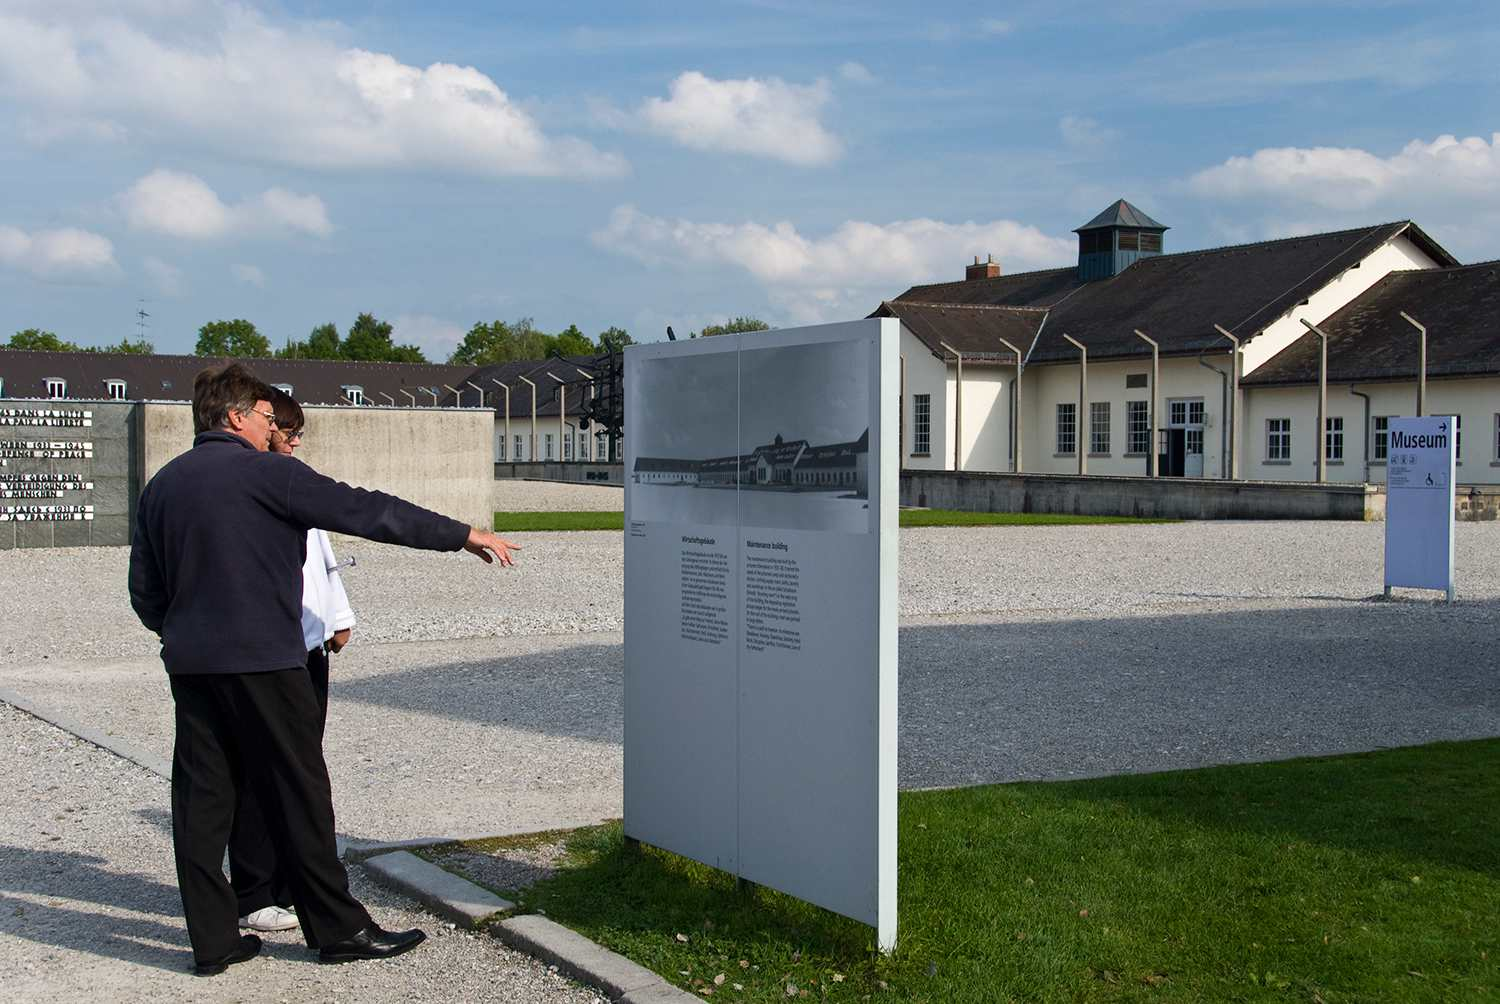 Tourists reading signage at near Dachau Concentration Camp Memorial entrance.